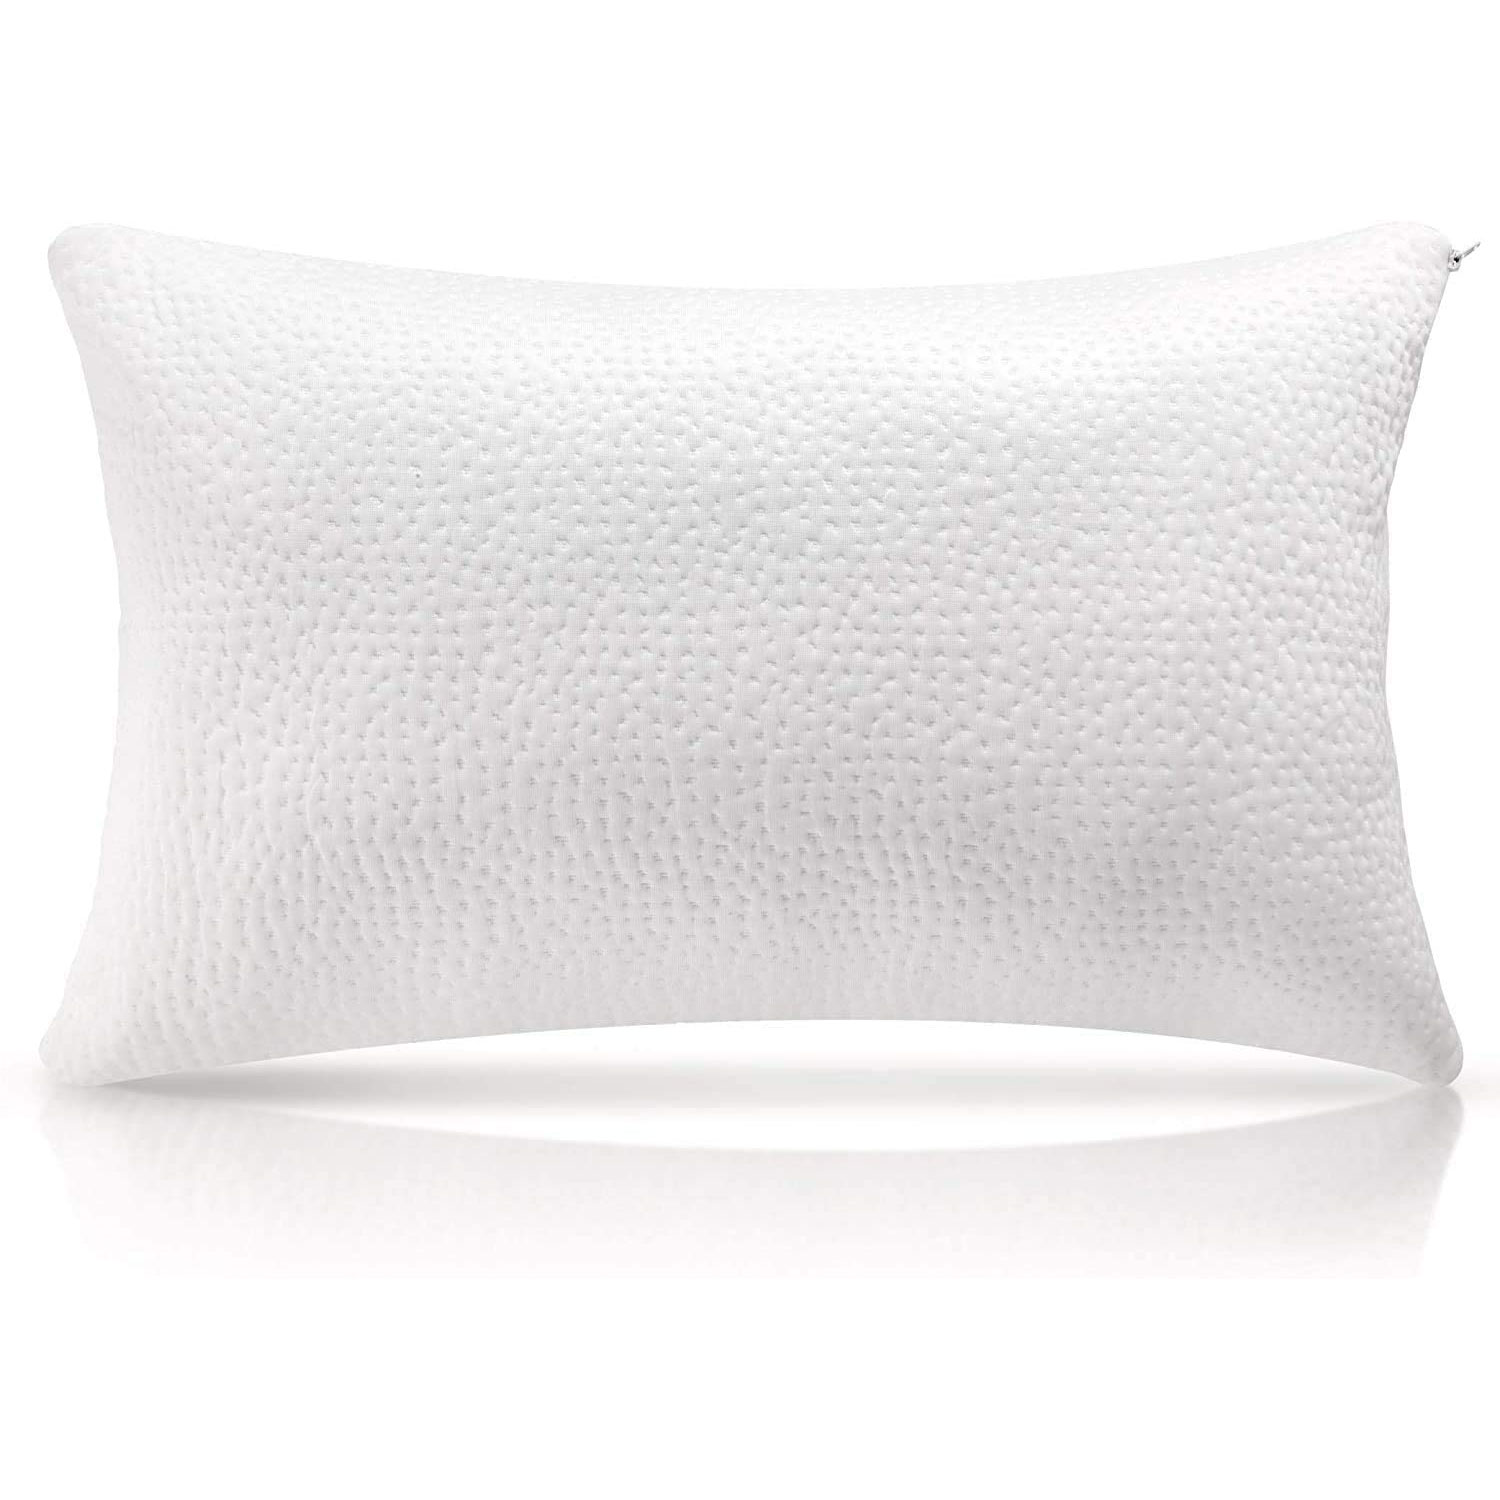 shredded memory foam pillow cooling bed pillows